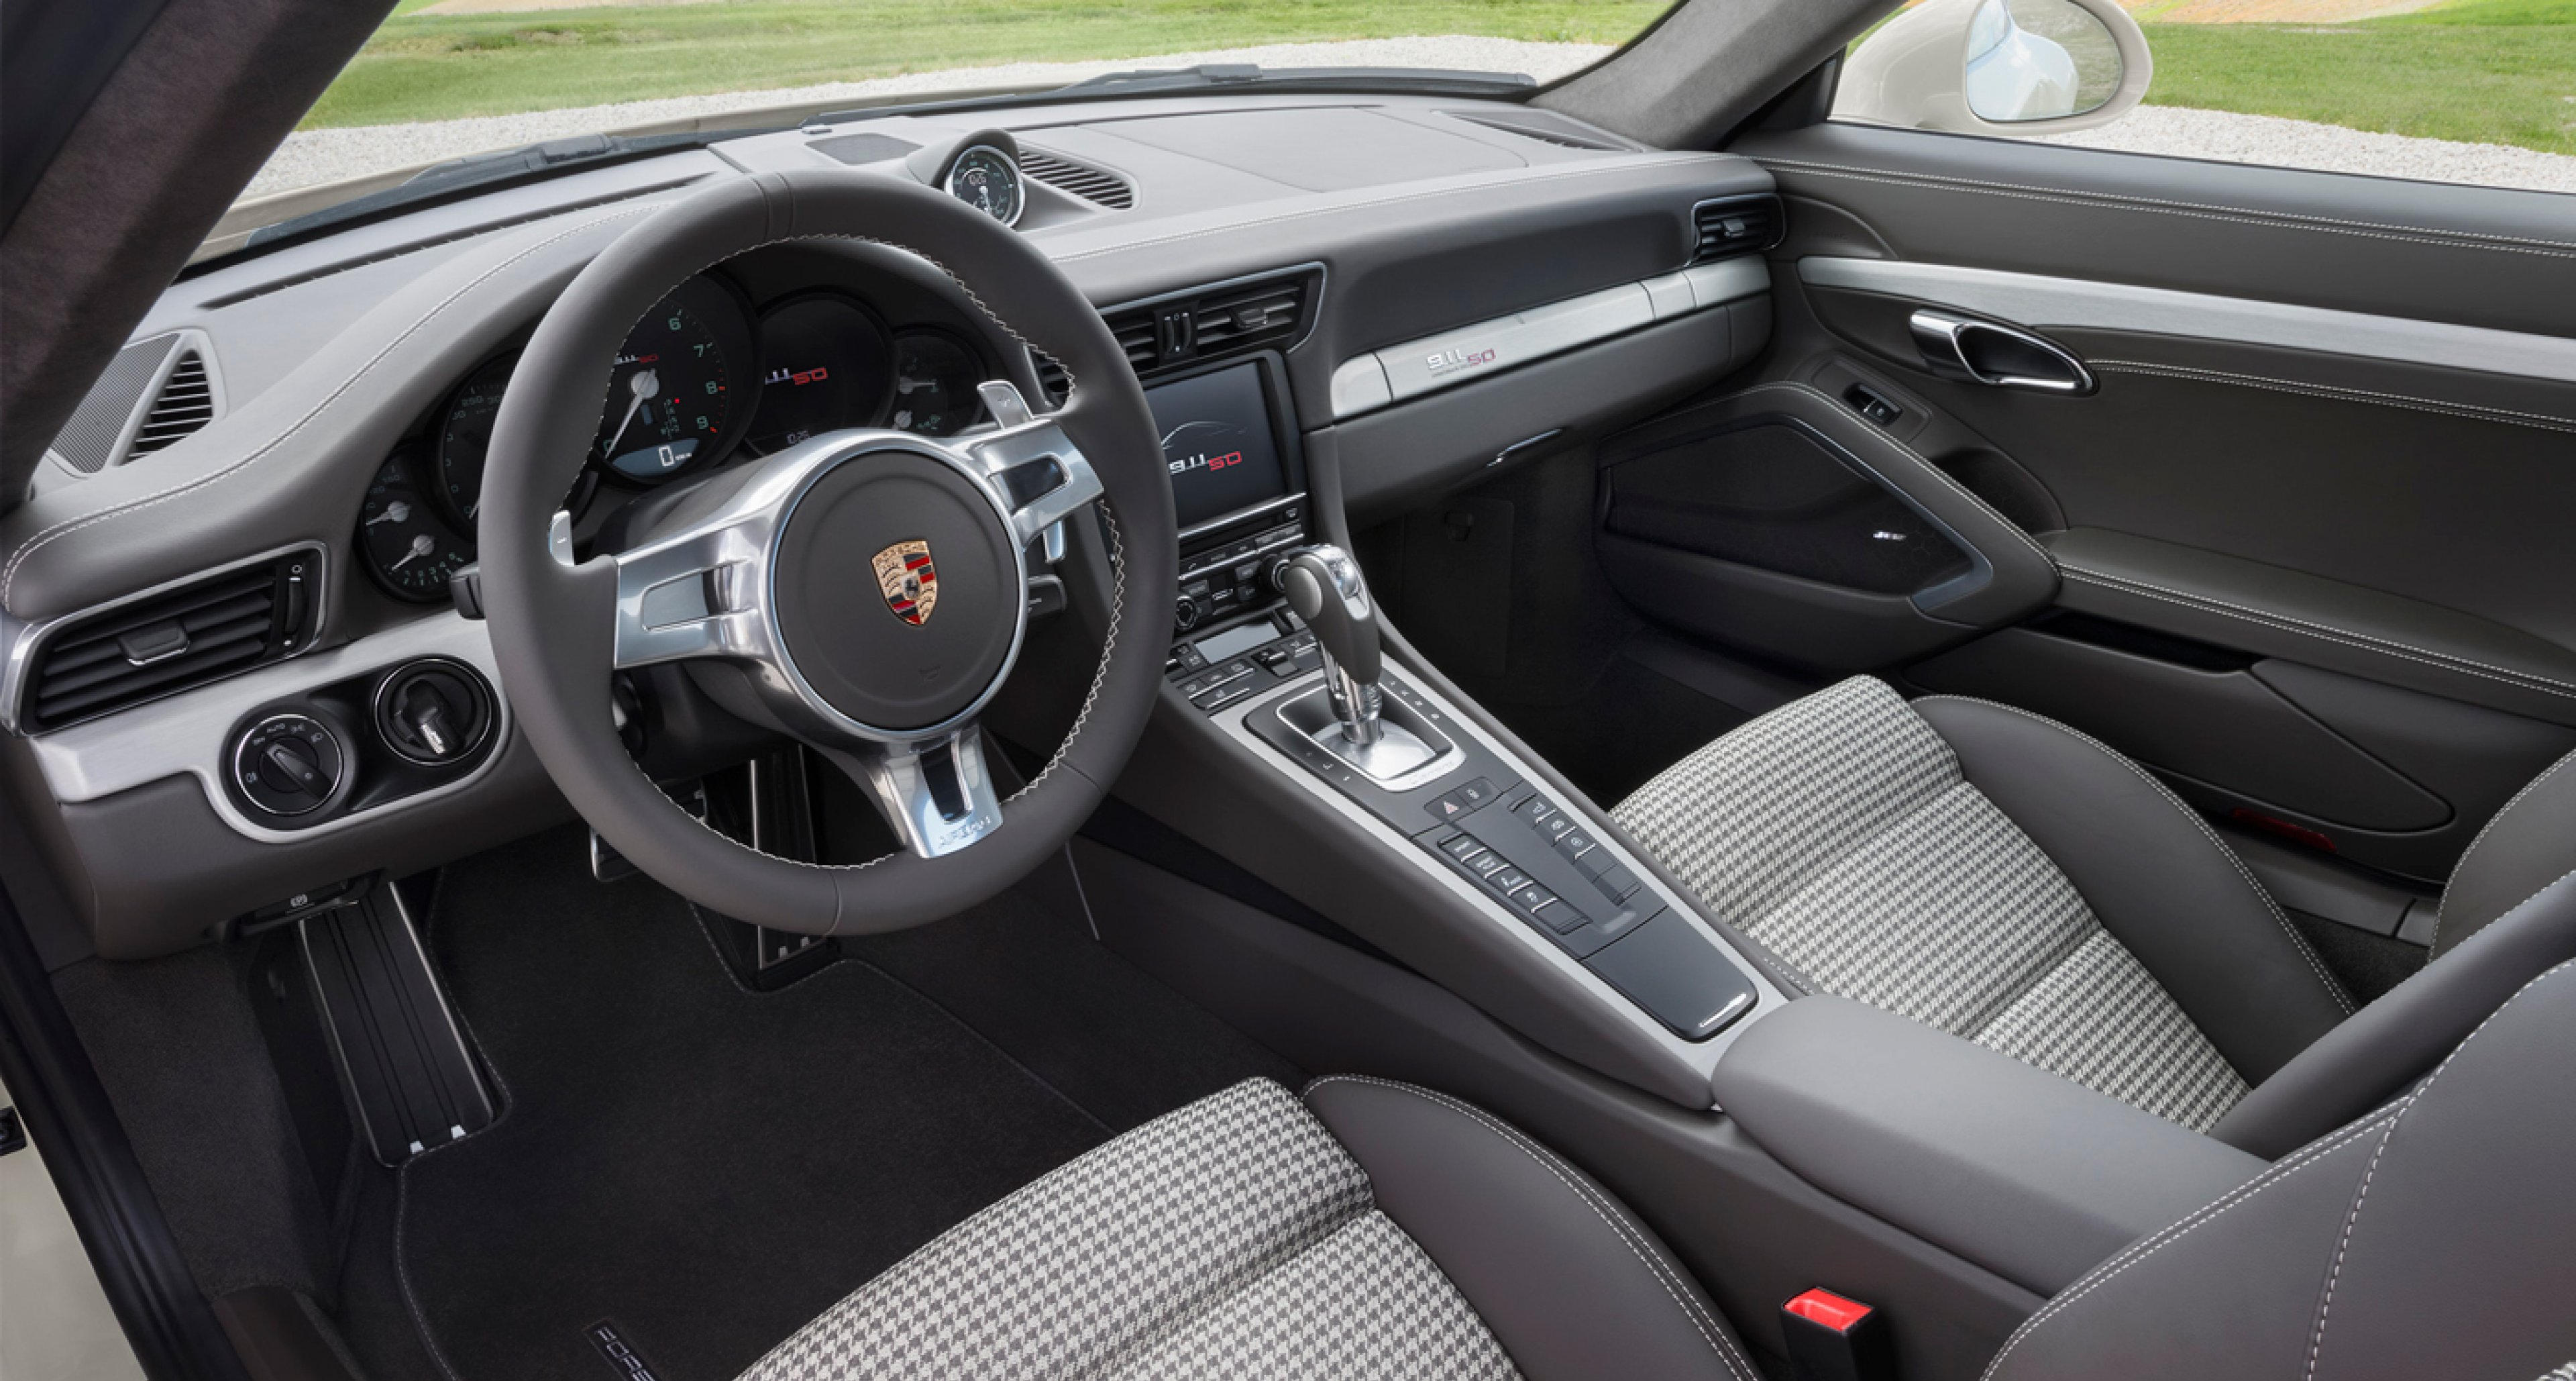 Celebrating 50 years of 911 with Pepita seats in the 2013 Porsche 911 anniversary model.